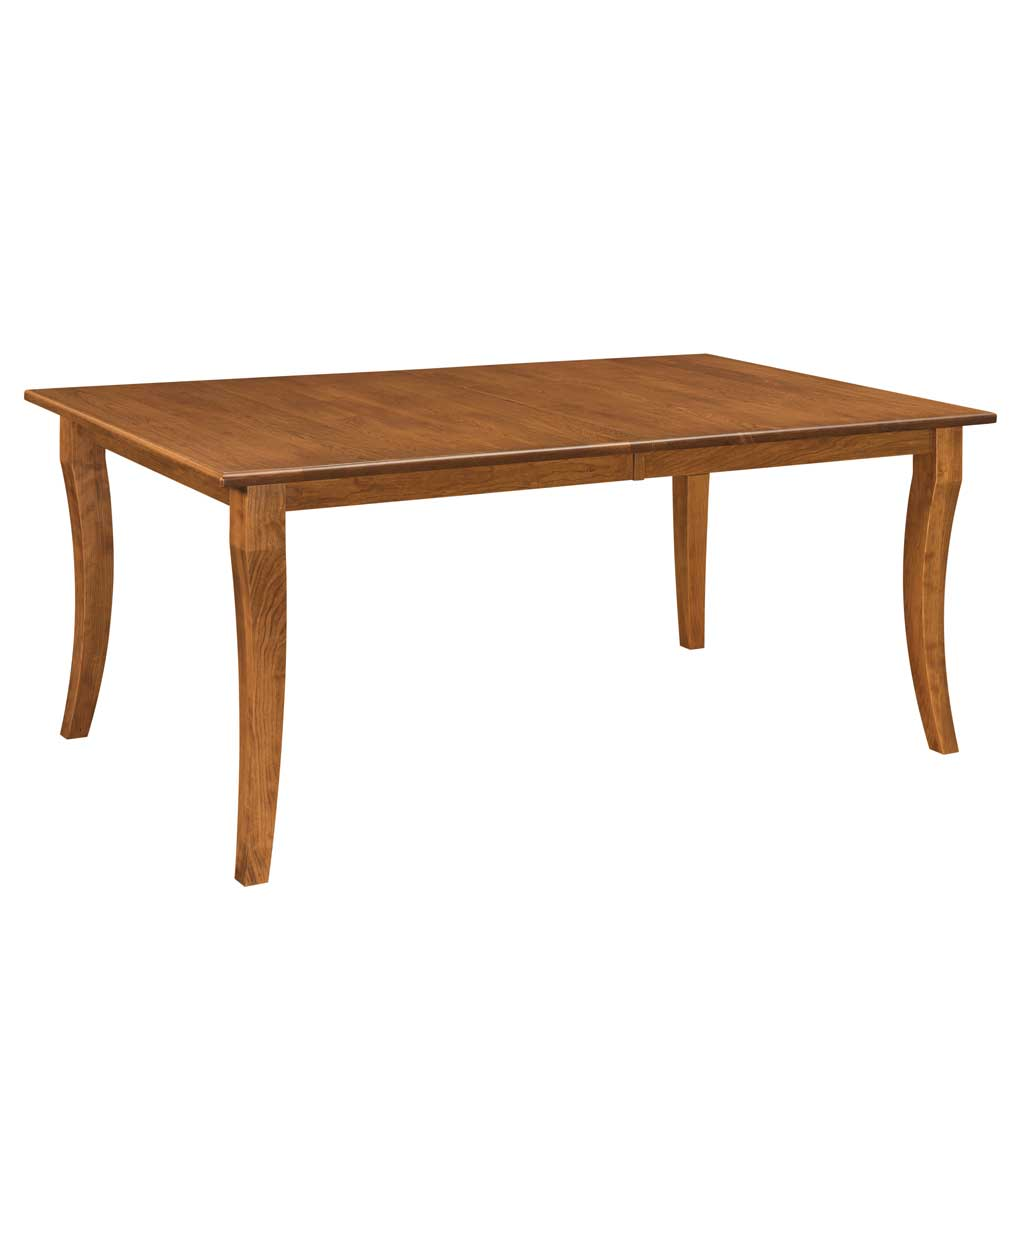 Amish Made Dining Room Tables: Fenmore Amish Leg Table